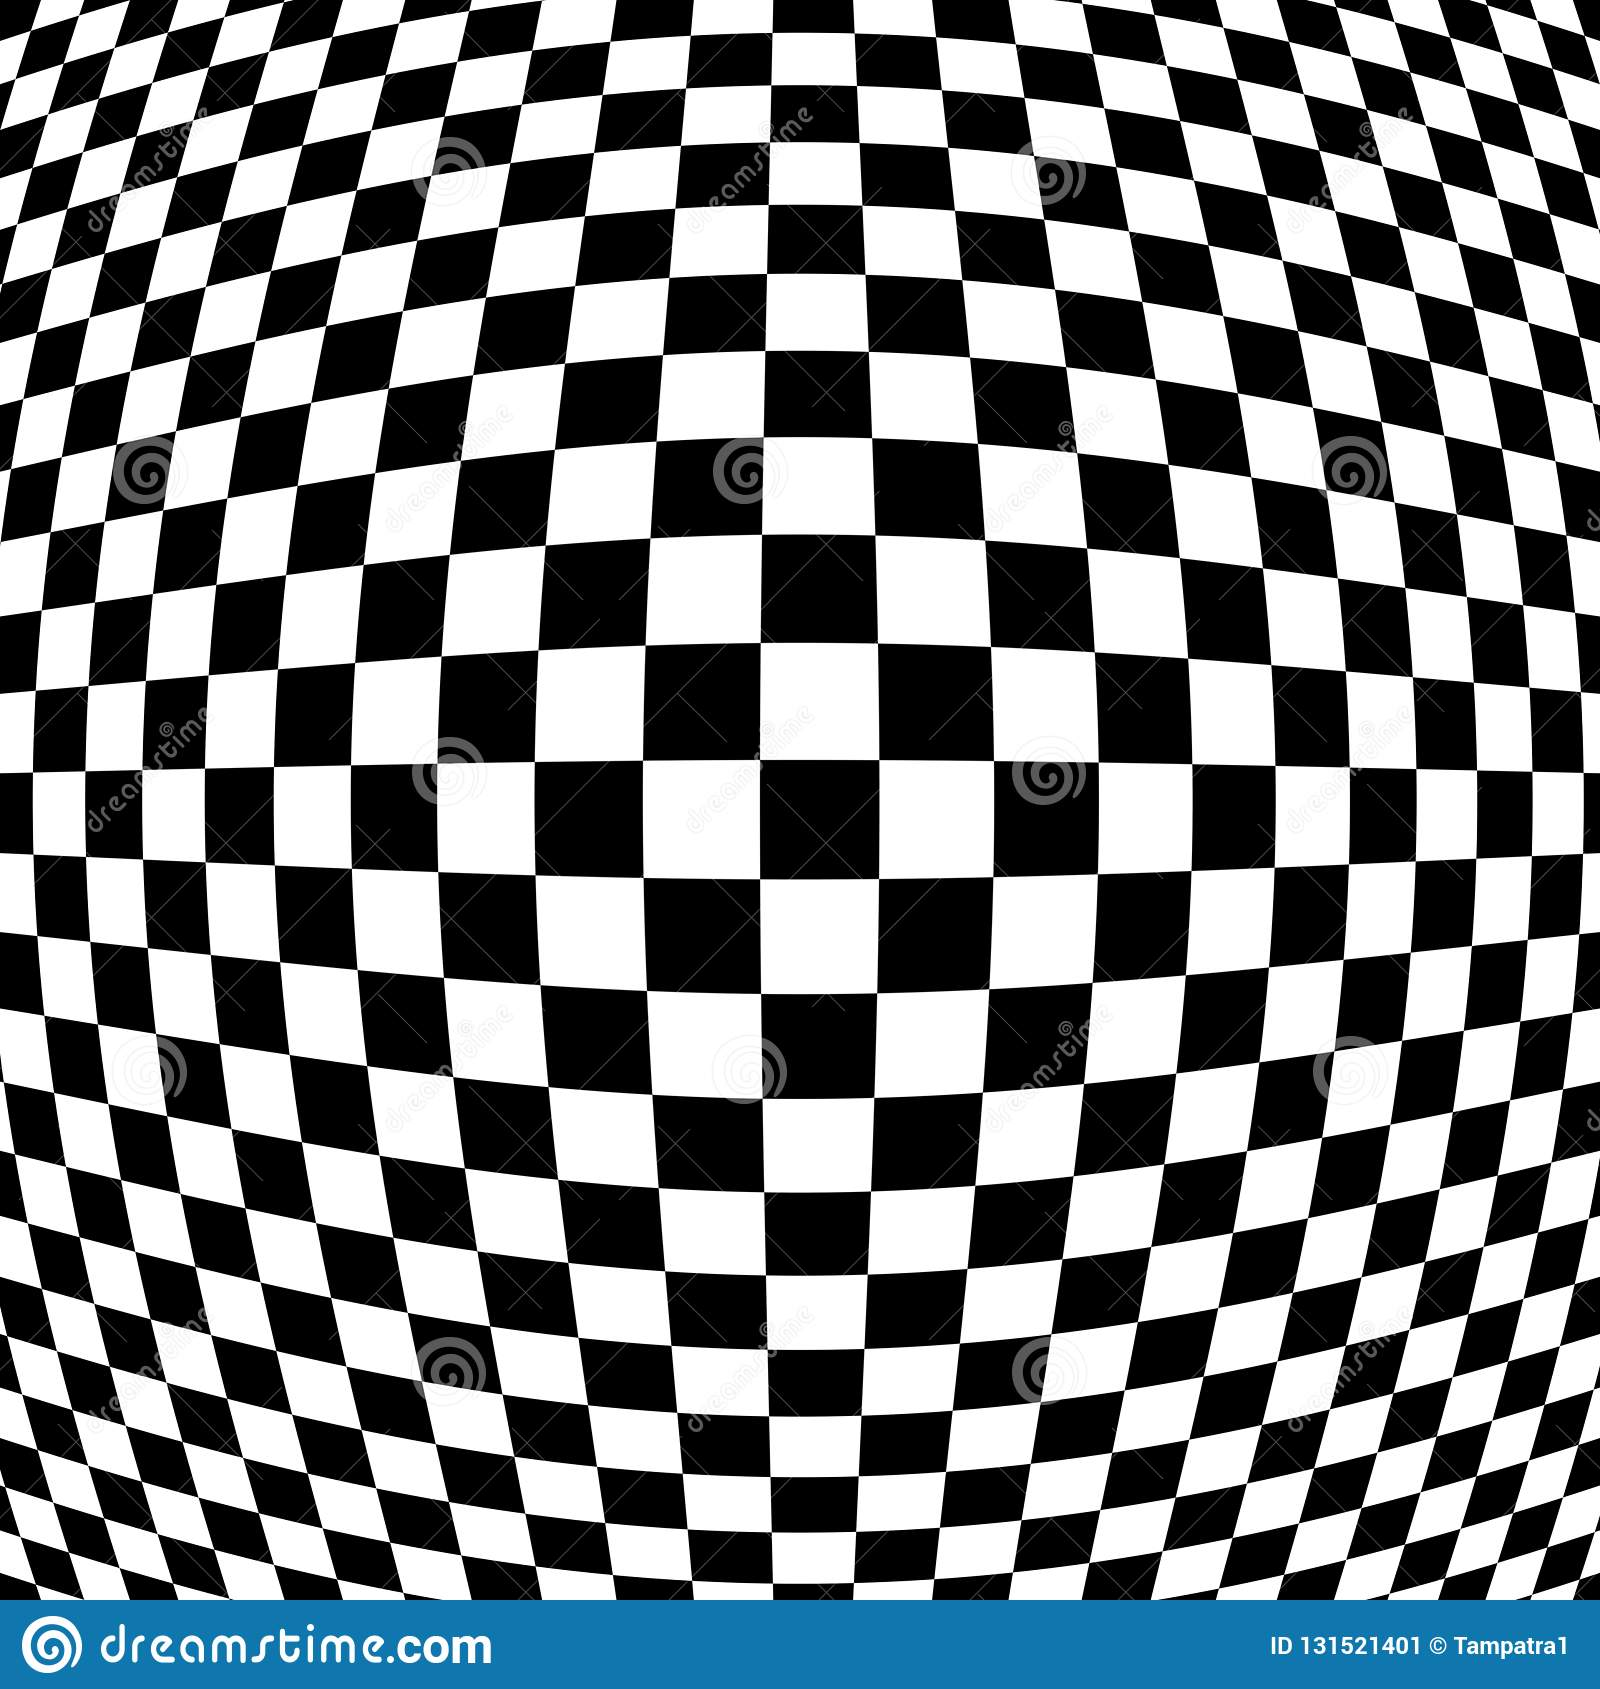 Checkered abstract wallpaper black and white fabric illusion pattern texture background 3d squares illustration